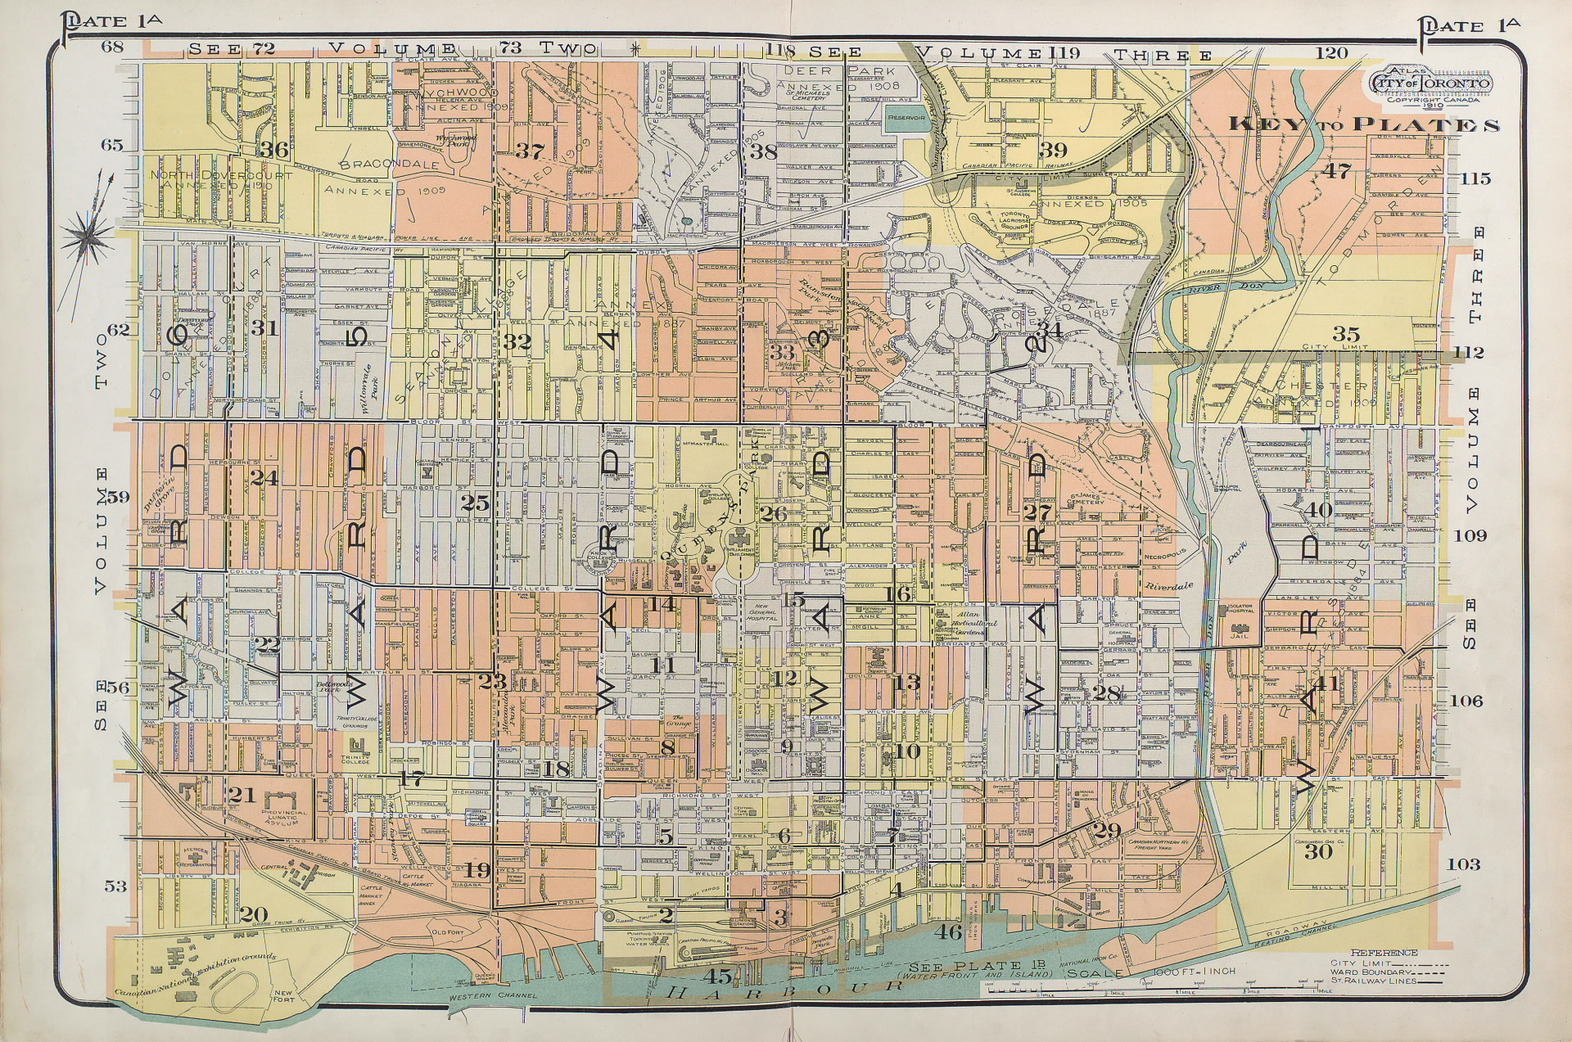 Goad S Atlas Of The City Of Toronto Fire Insurance Maps From The